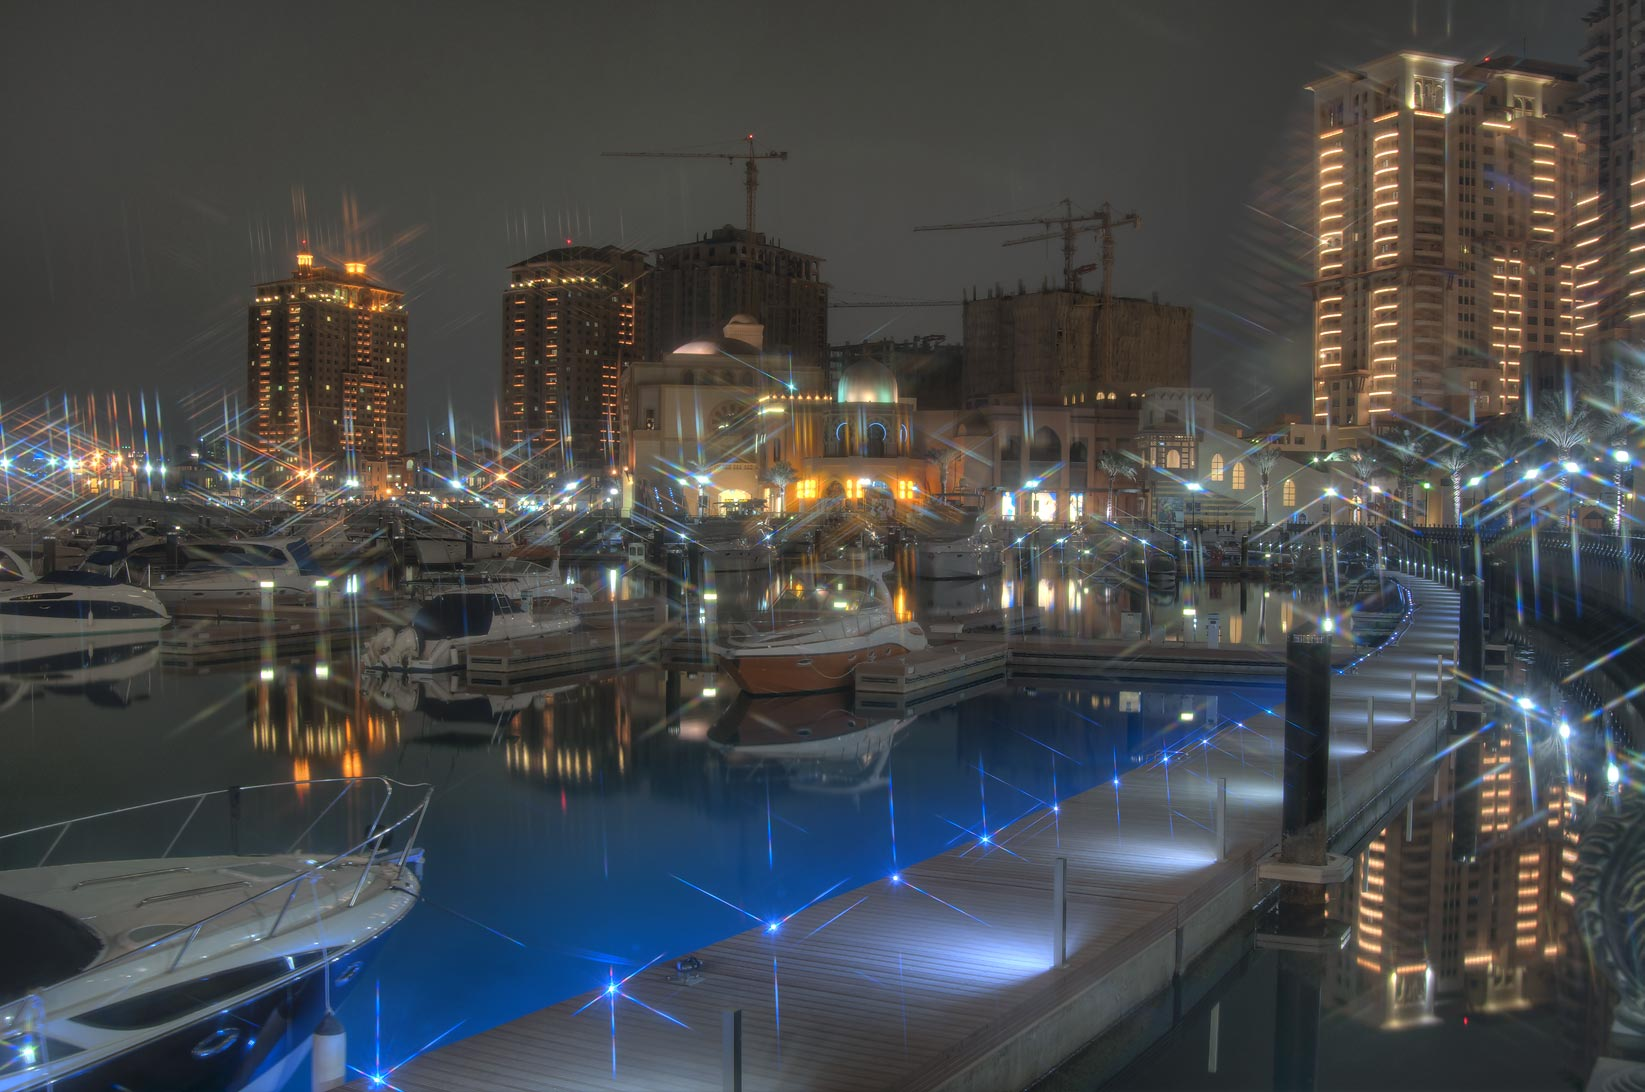 Boardwalk of marina of Porto Arabia in Pearl Qatar development. Doha, Qatar